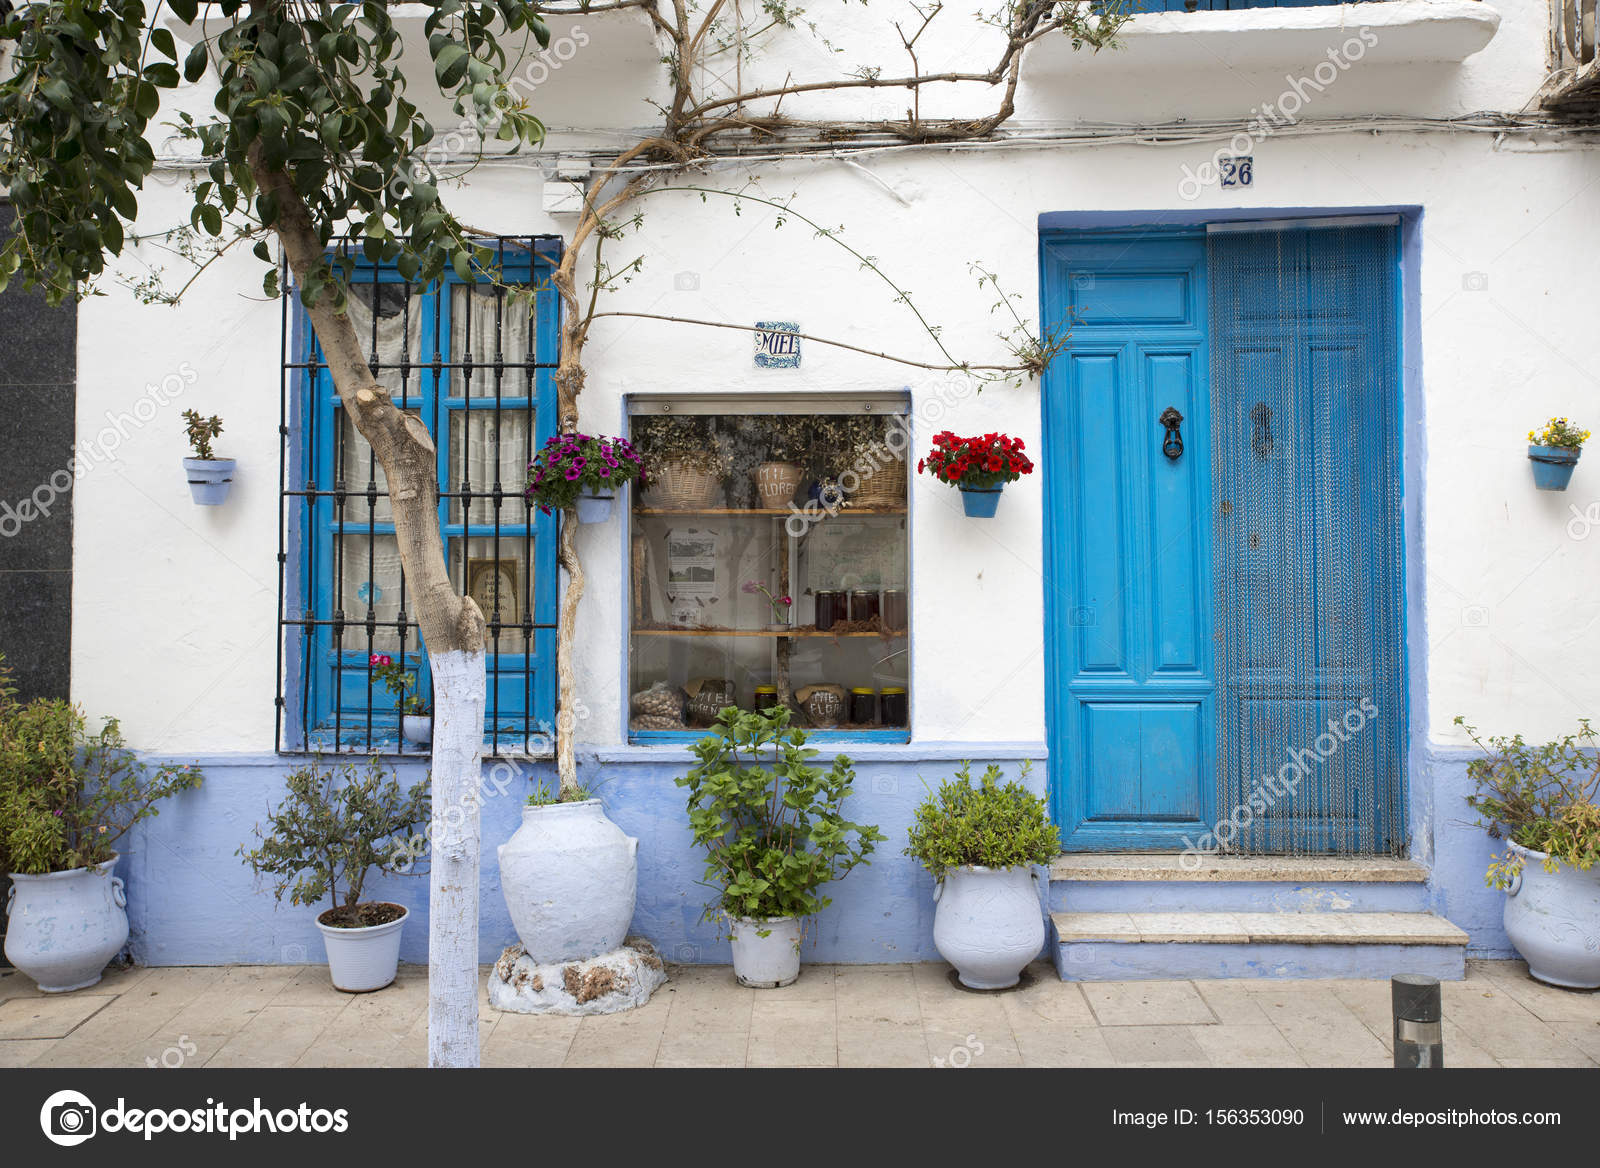 Typical blue and white house in spain stock photo for Blue and white house